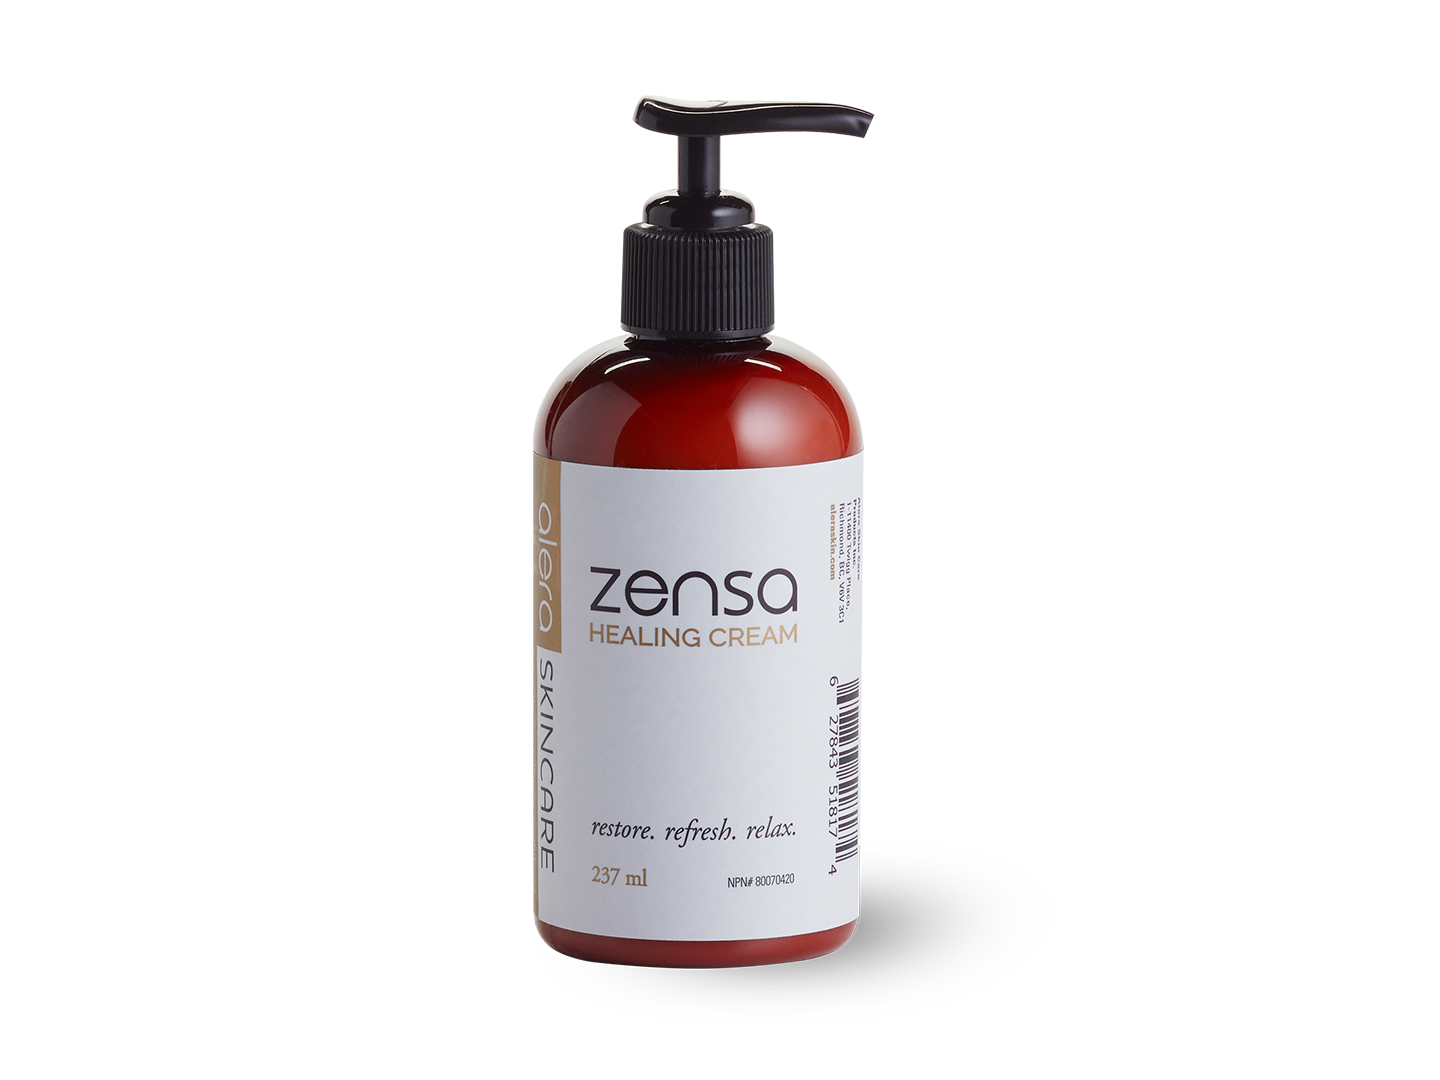 Zensa Healing Cream - 237ml | Pharmaceutical-grade relief for skin